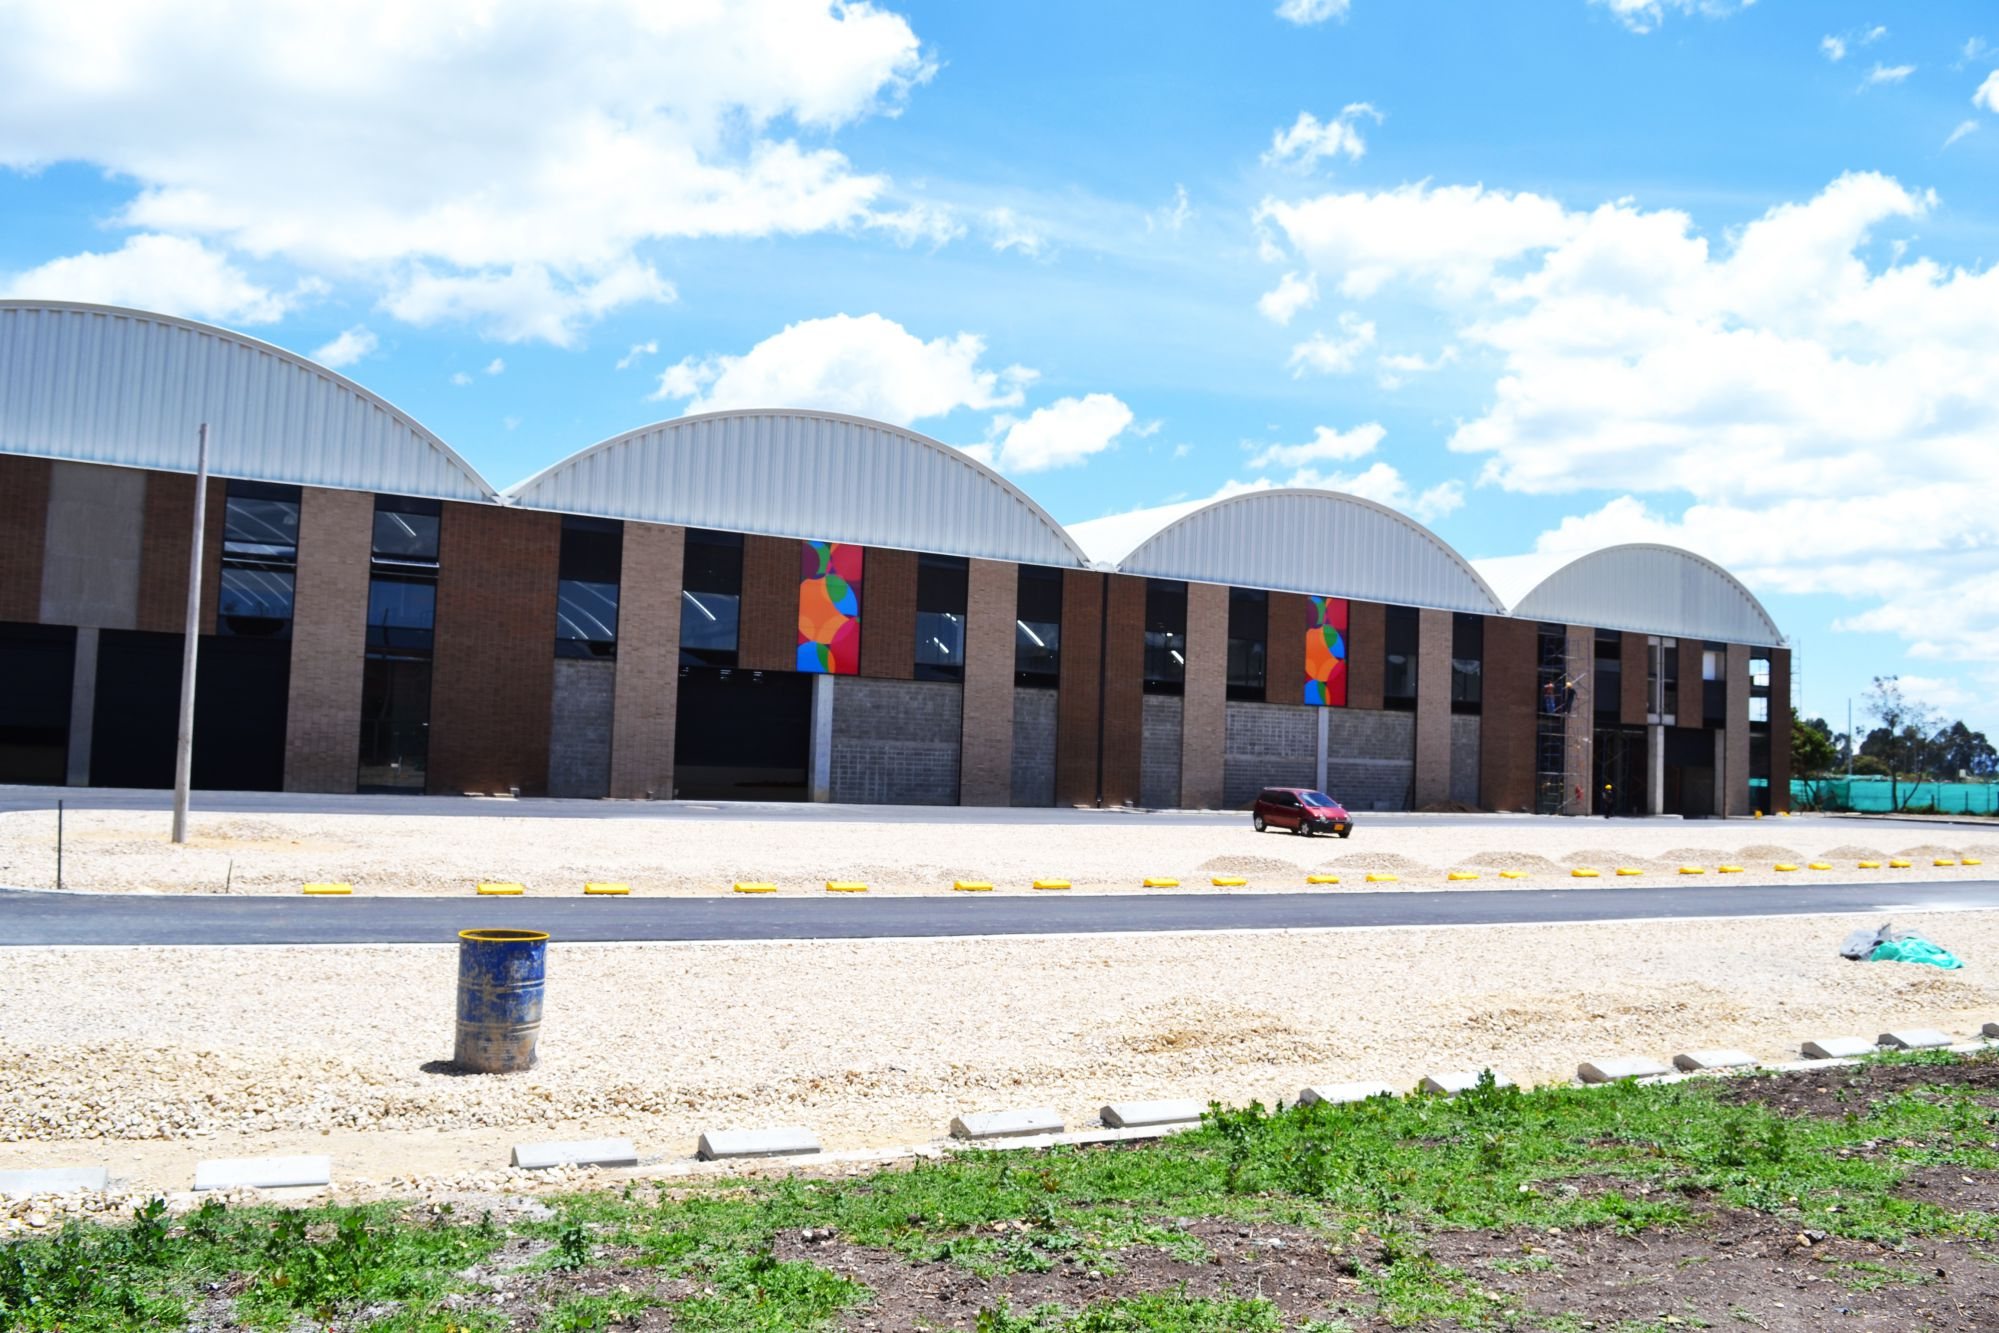 PPC Flexible packaging announces completion and grand opening of new plant in colombia for its horticulture business.